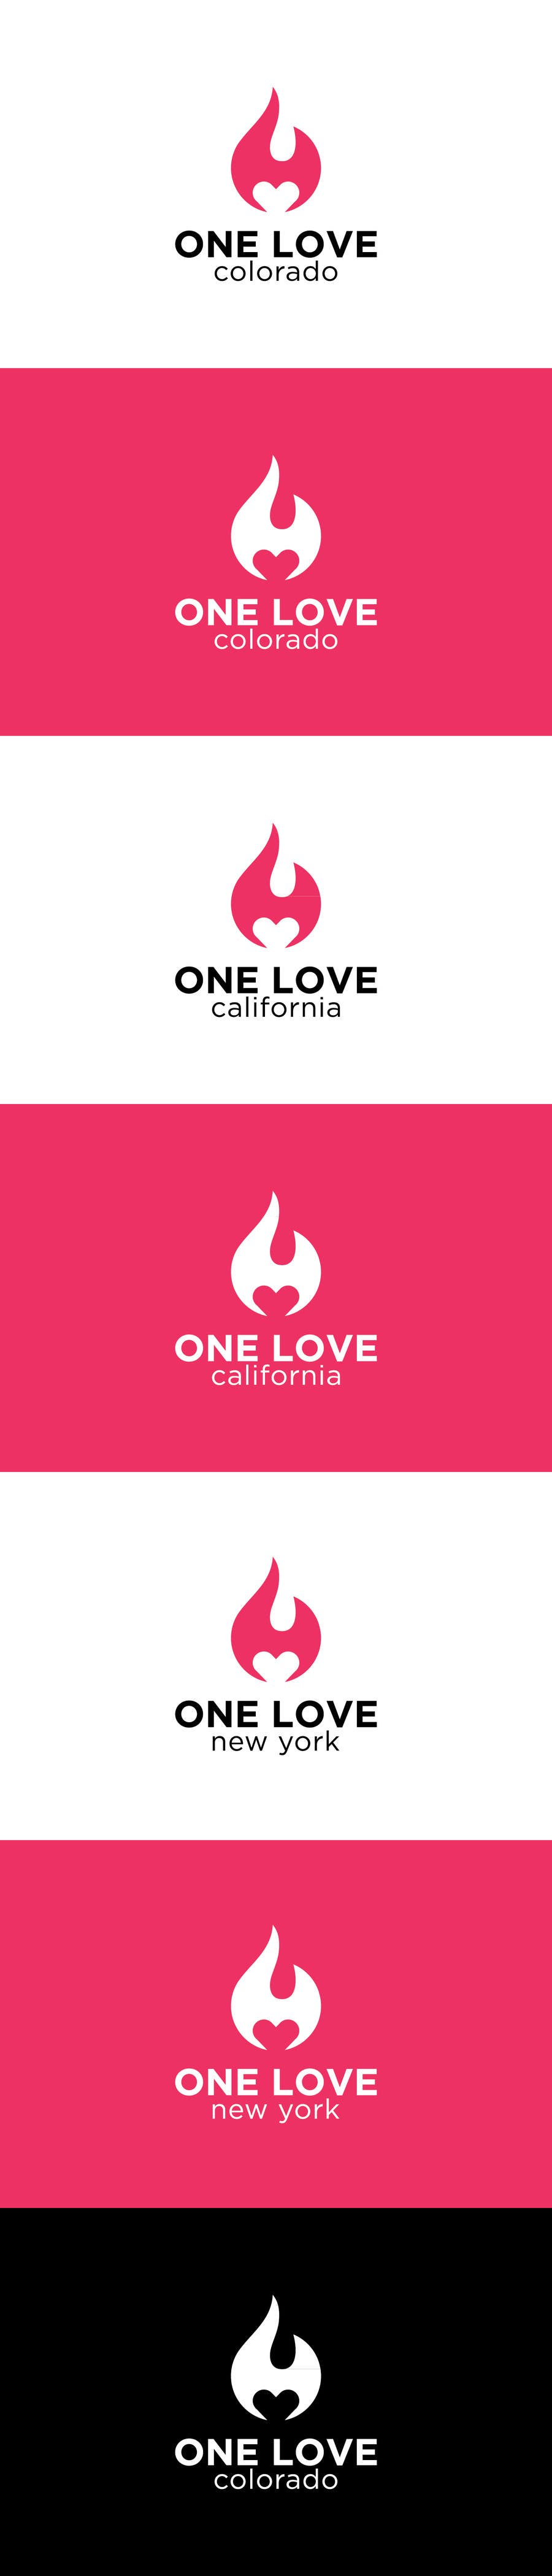 outdoors dating app Outdoor & activity arts  a survey conducted by dating app badoo found that more than half of women looking for a relationship with a man would swipe left.